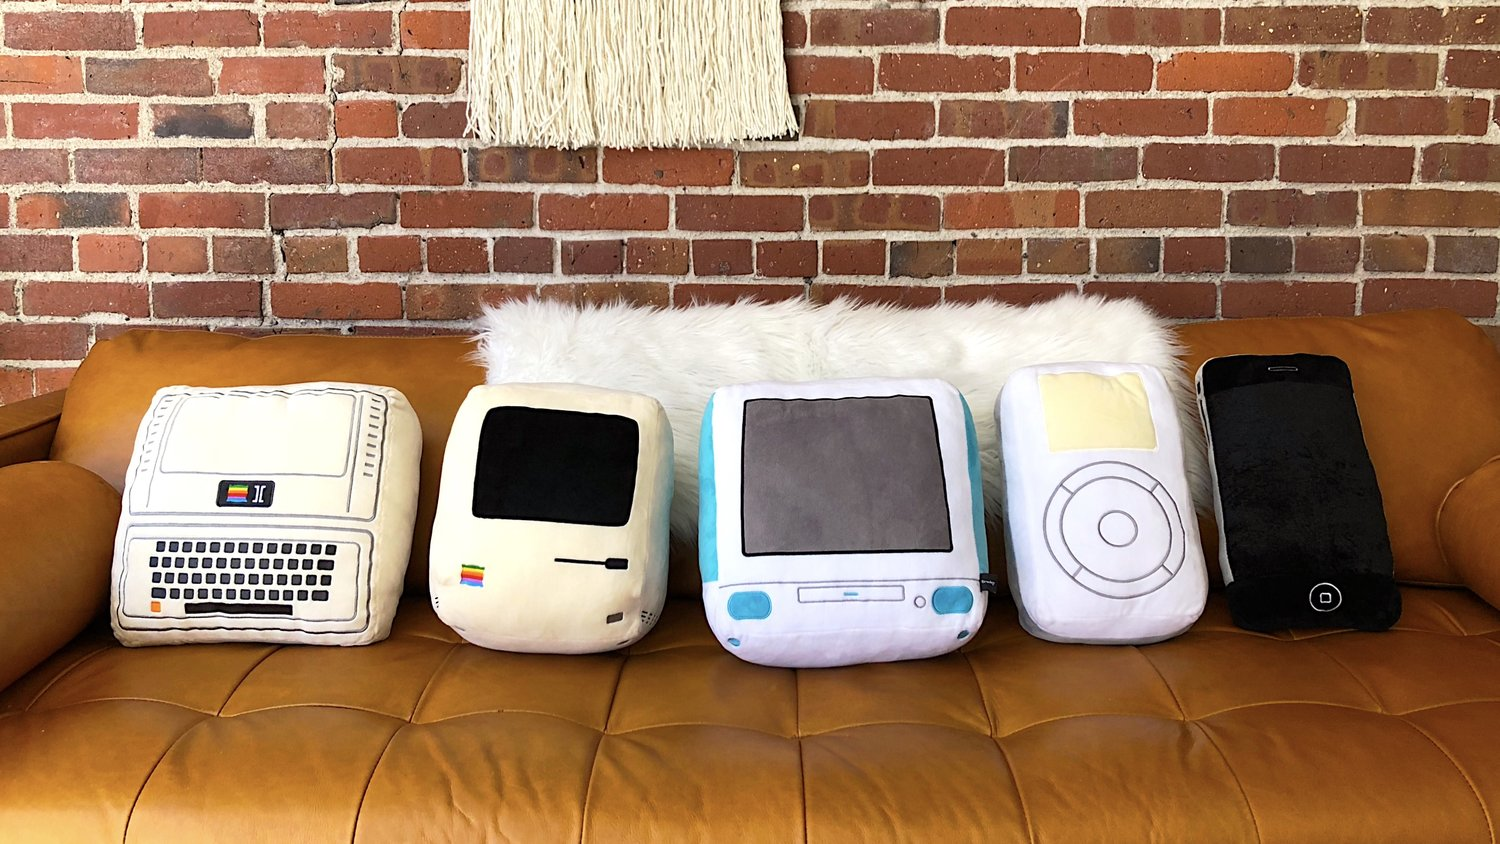 Iconic Pillow Collection: Mit alten Apple-Computern kuscheln